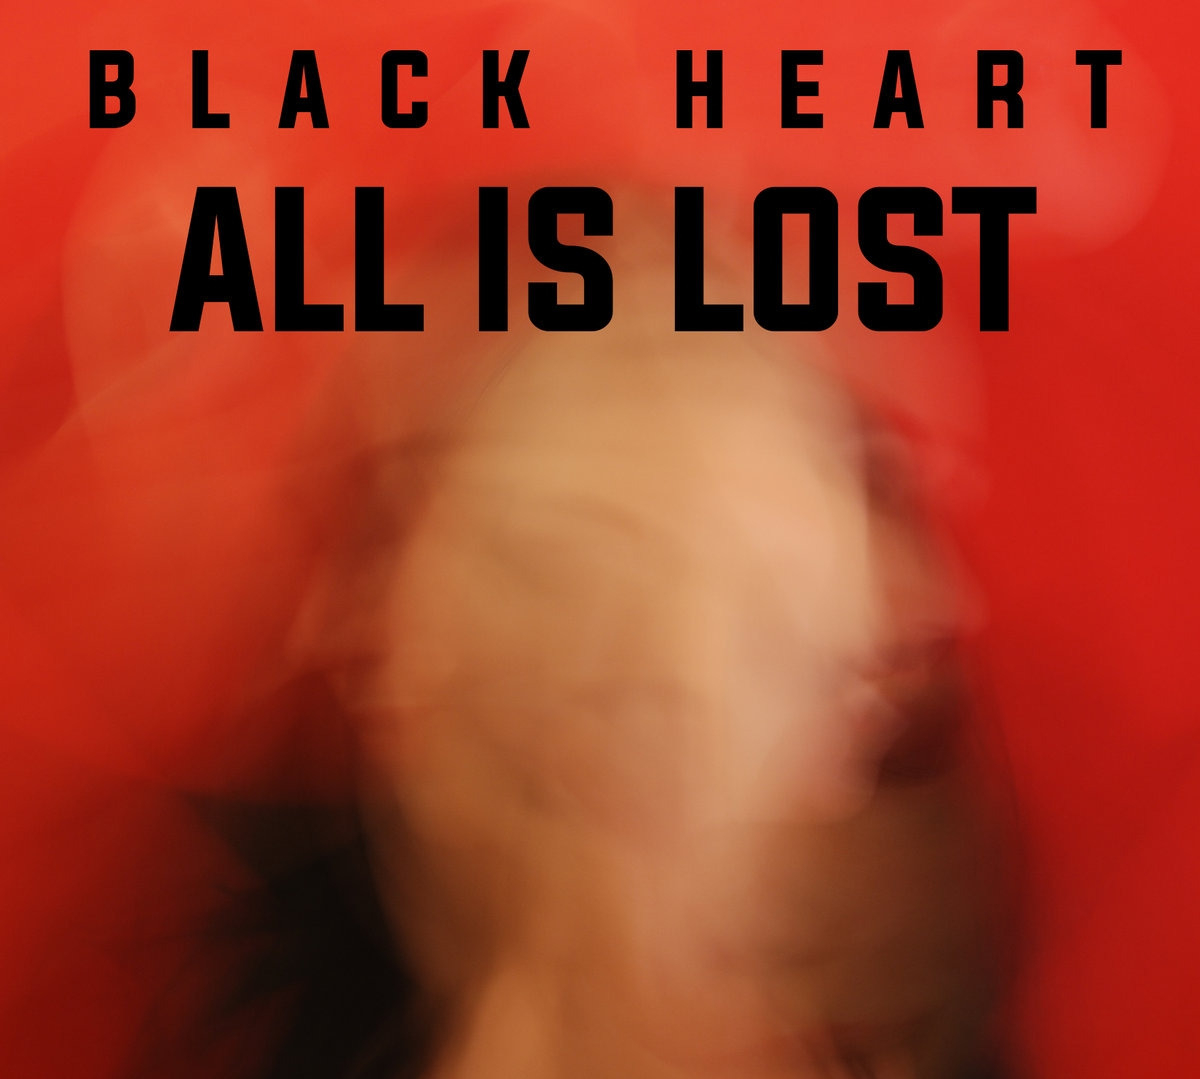 Black Heart, All is Lost